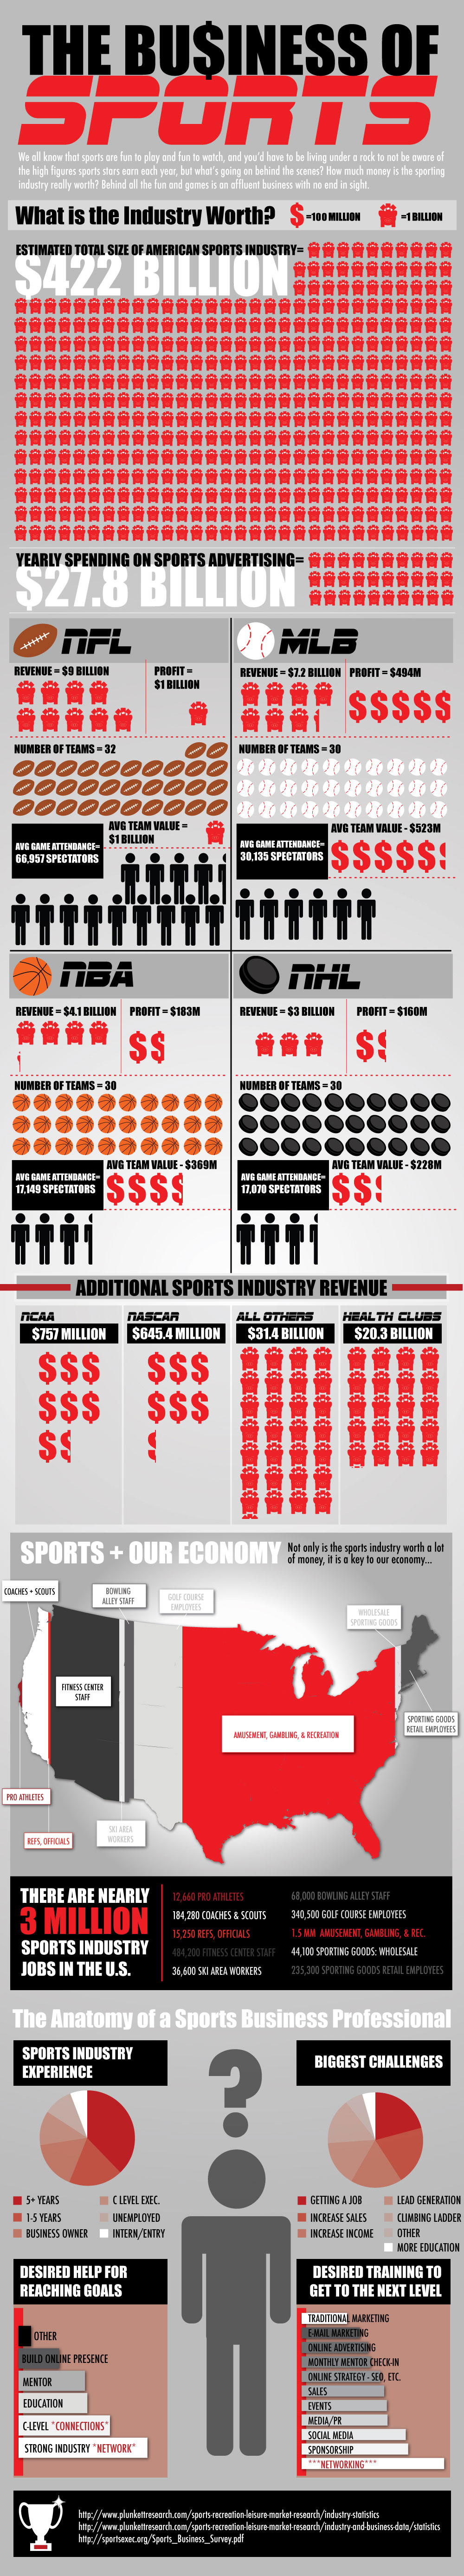 the business of sports The Business of Sports [INFOGRAPHIC]